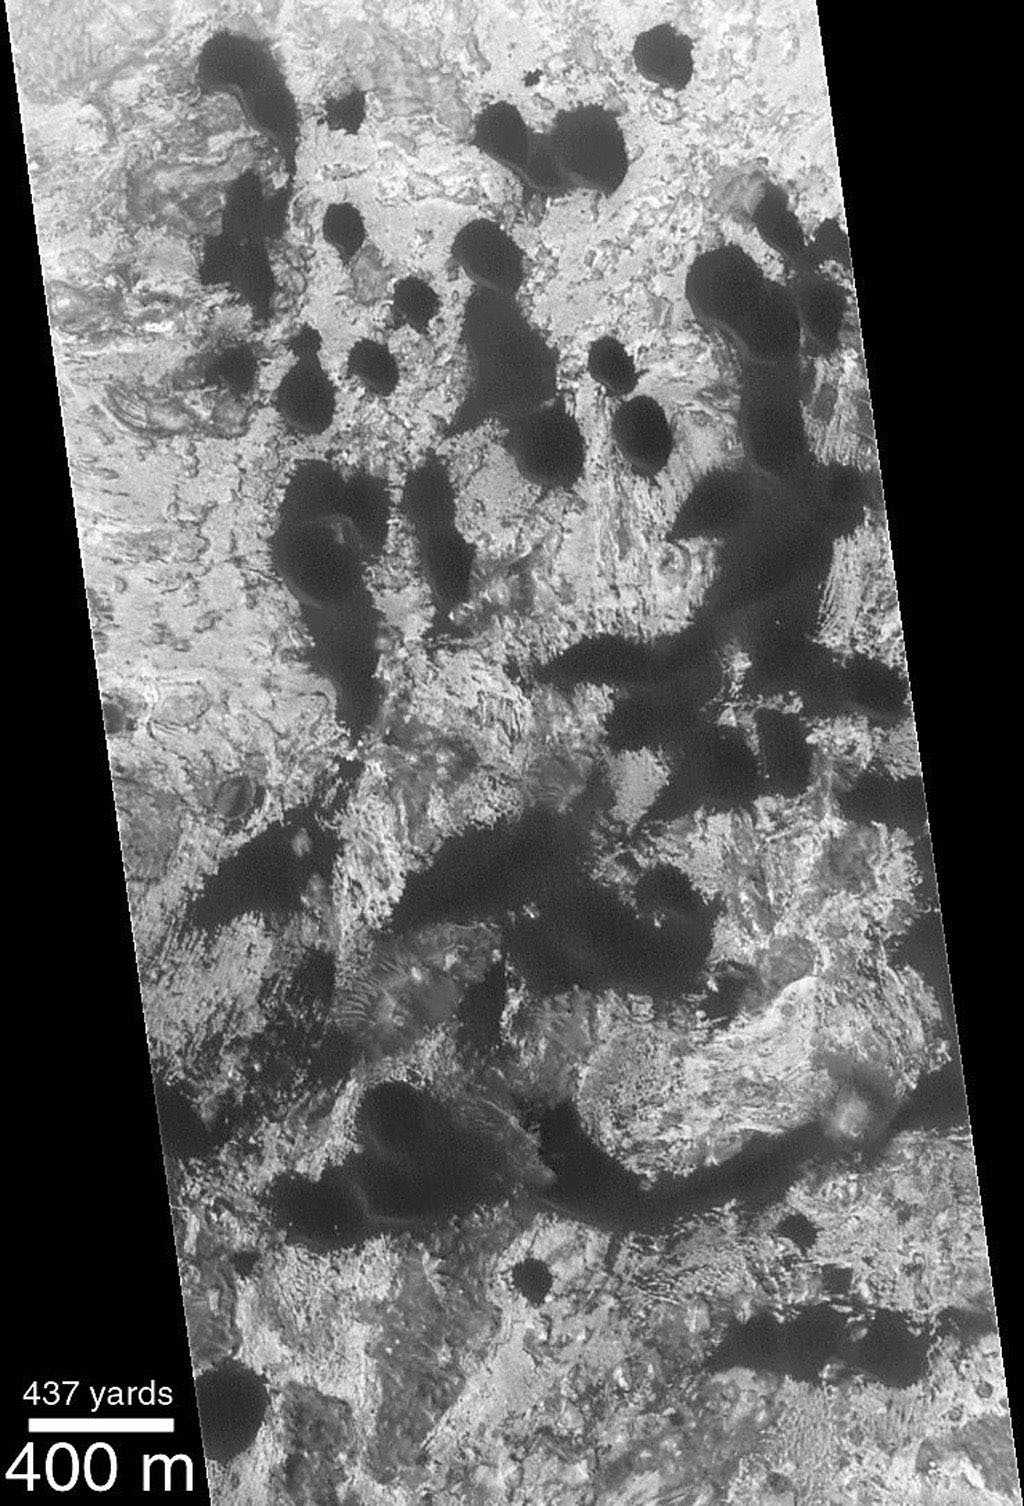 NASA's Mars Global Surveyor shows classic, crescentic shape of the dark barchan dunes on Mars.